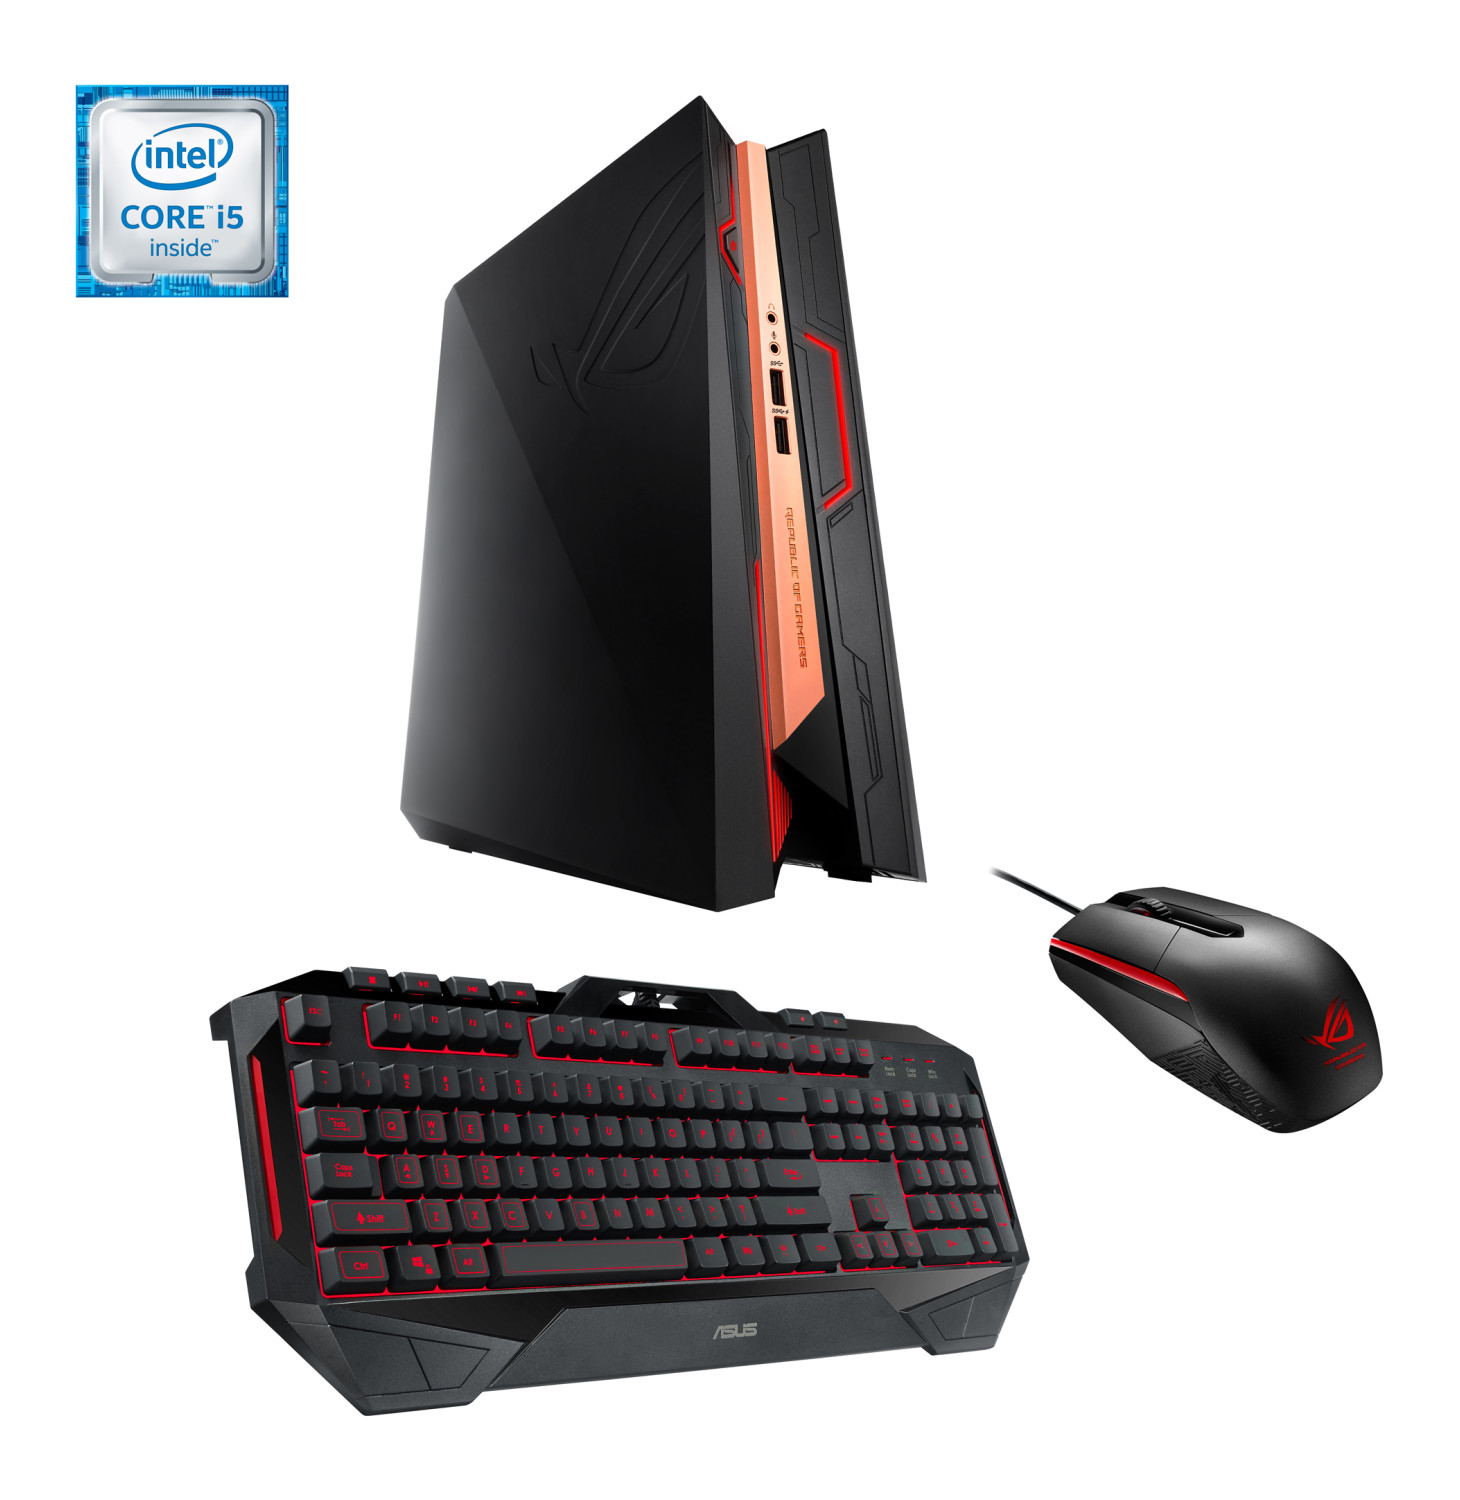 ASUS ROG GR8-II Intel Core i5 Gaming Desktop PC Bundle